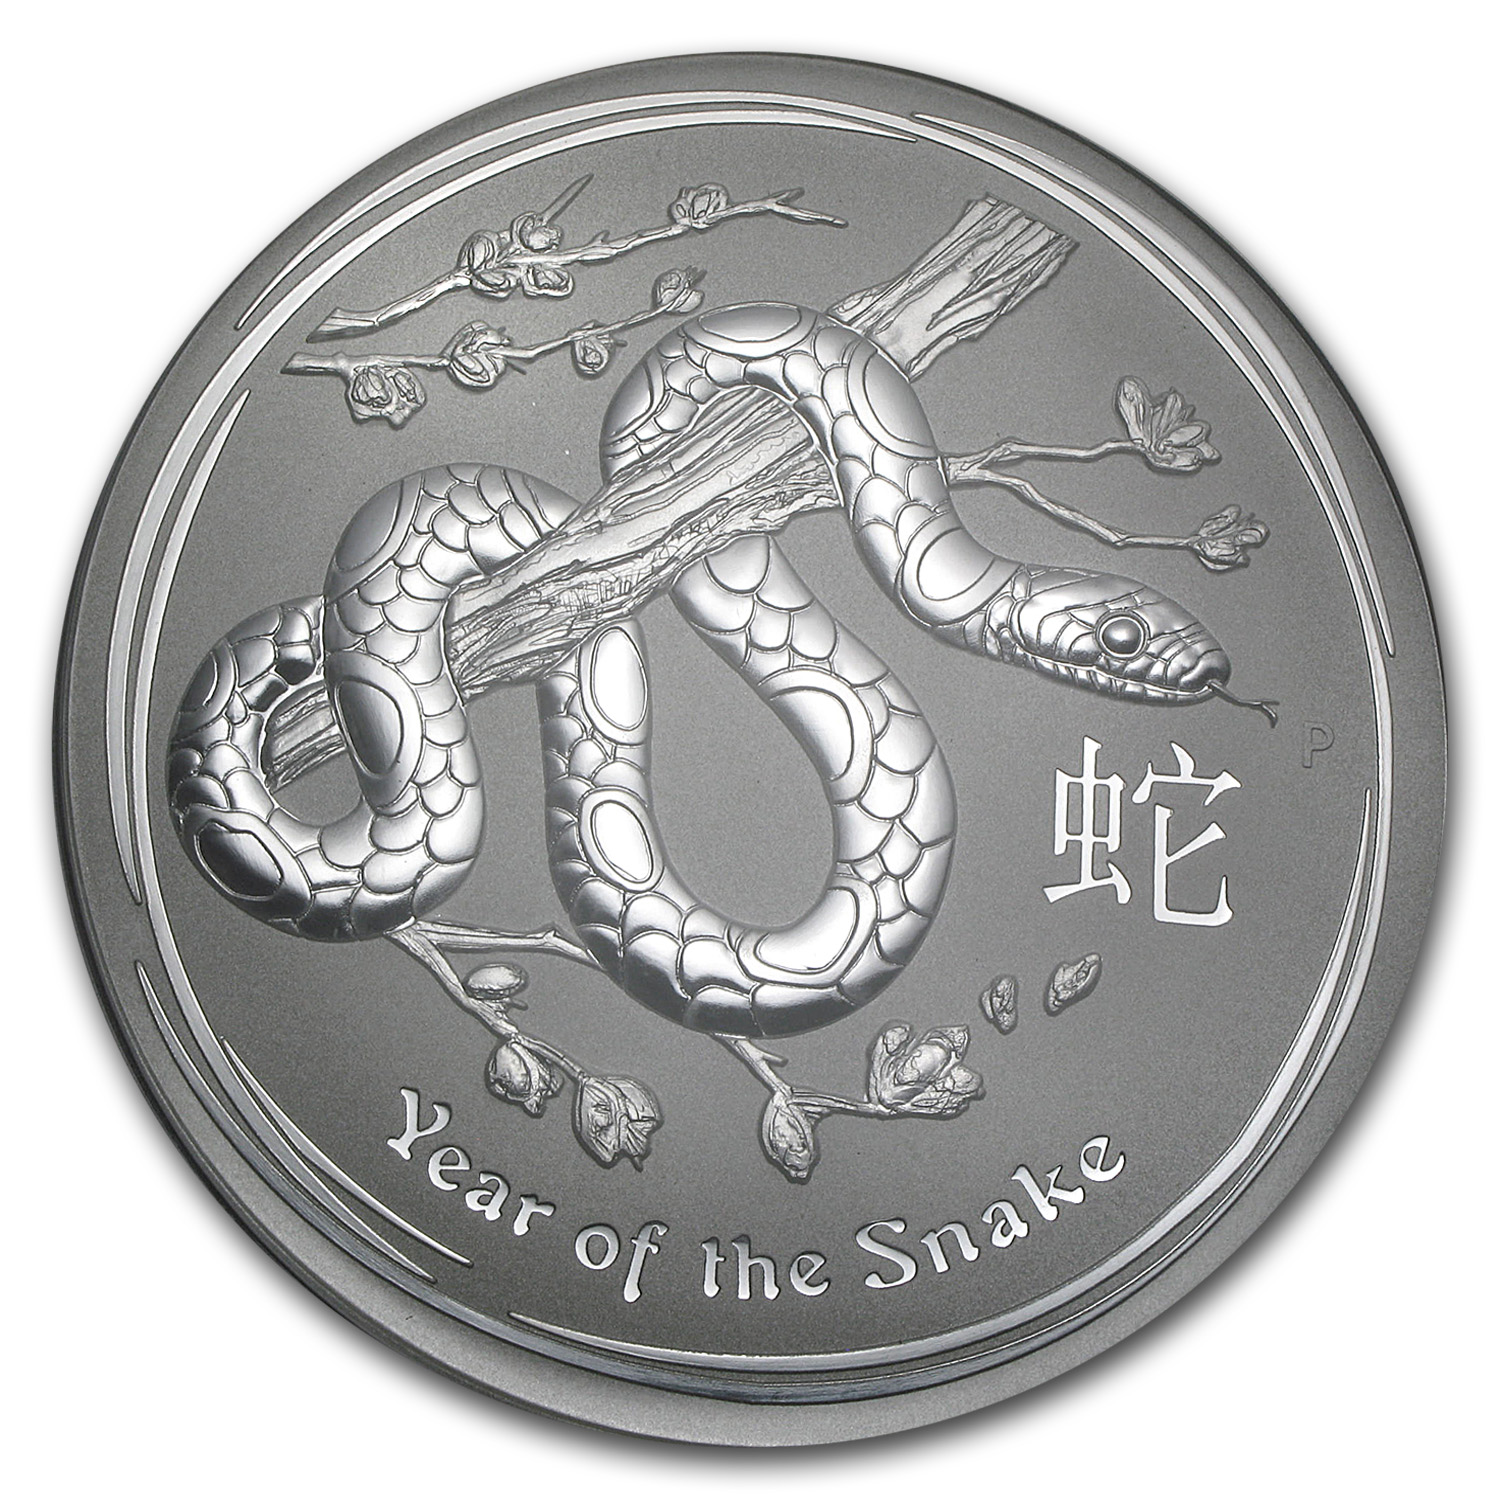 2013 Australia 1 kilo Silver Year of the Snake BU